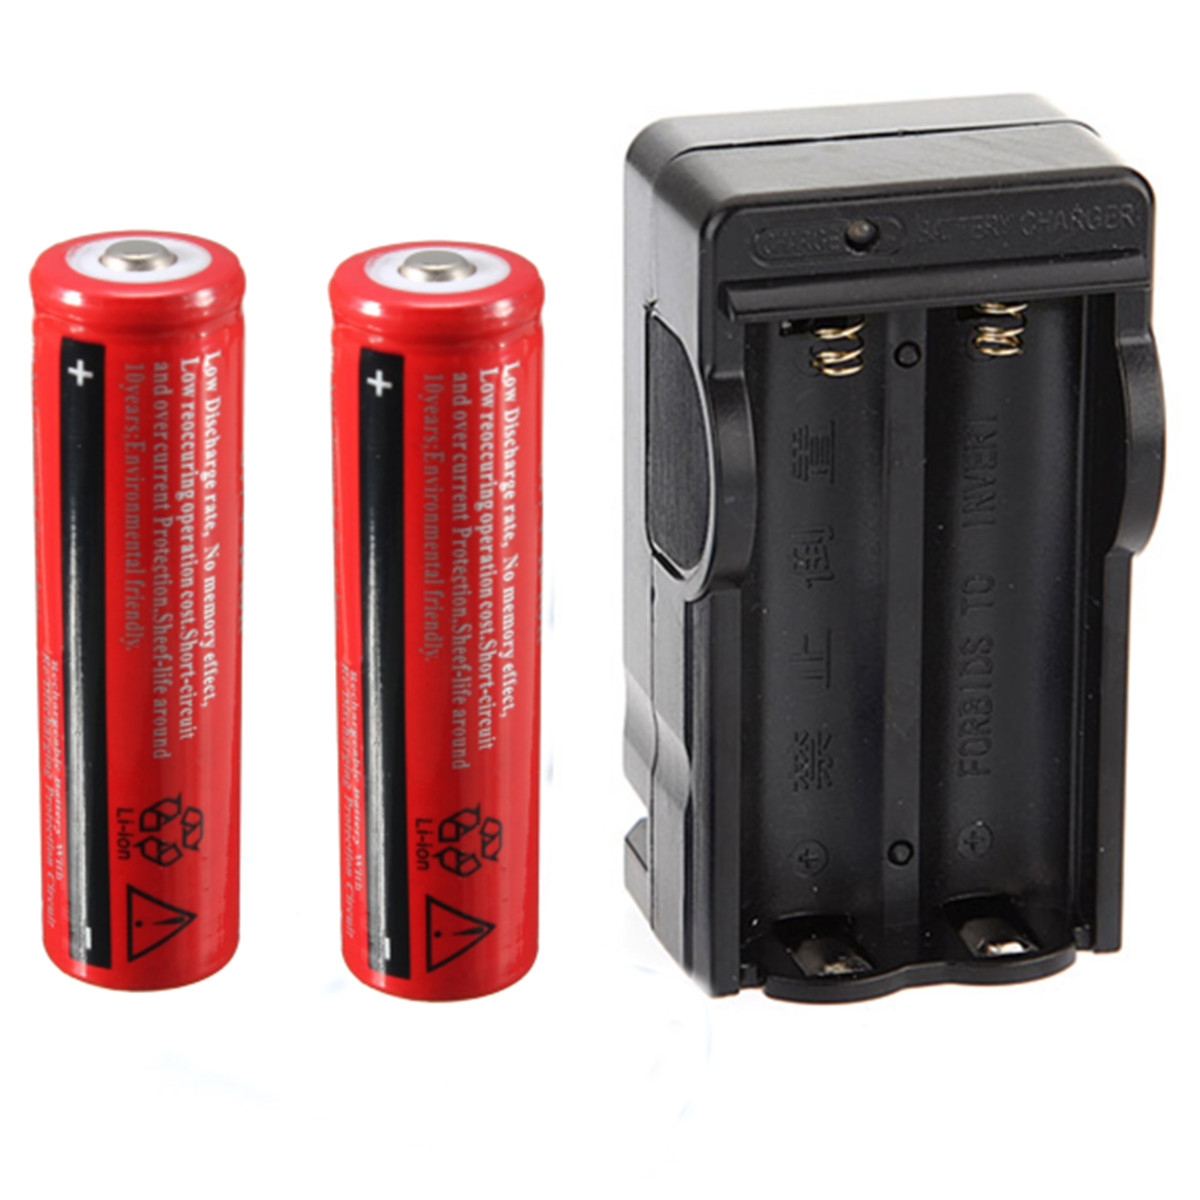 2x 18650 4200mah 3 7v li ion rechargeable battery for flashlight dual charger ebay. Black Bedroom Furniture Sets. Home Design Ideas